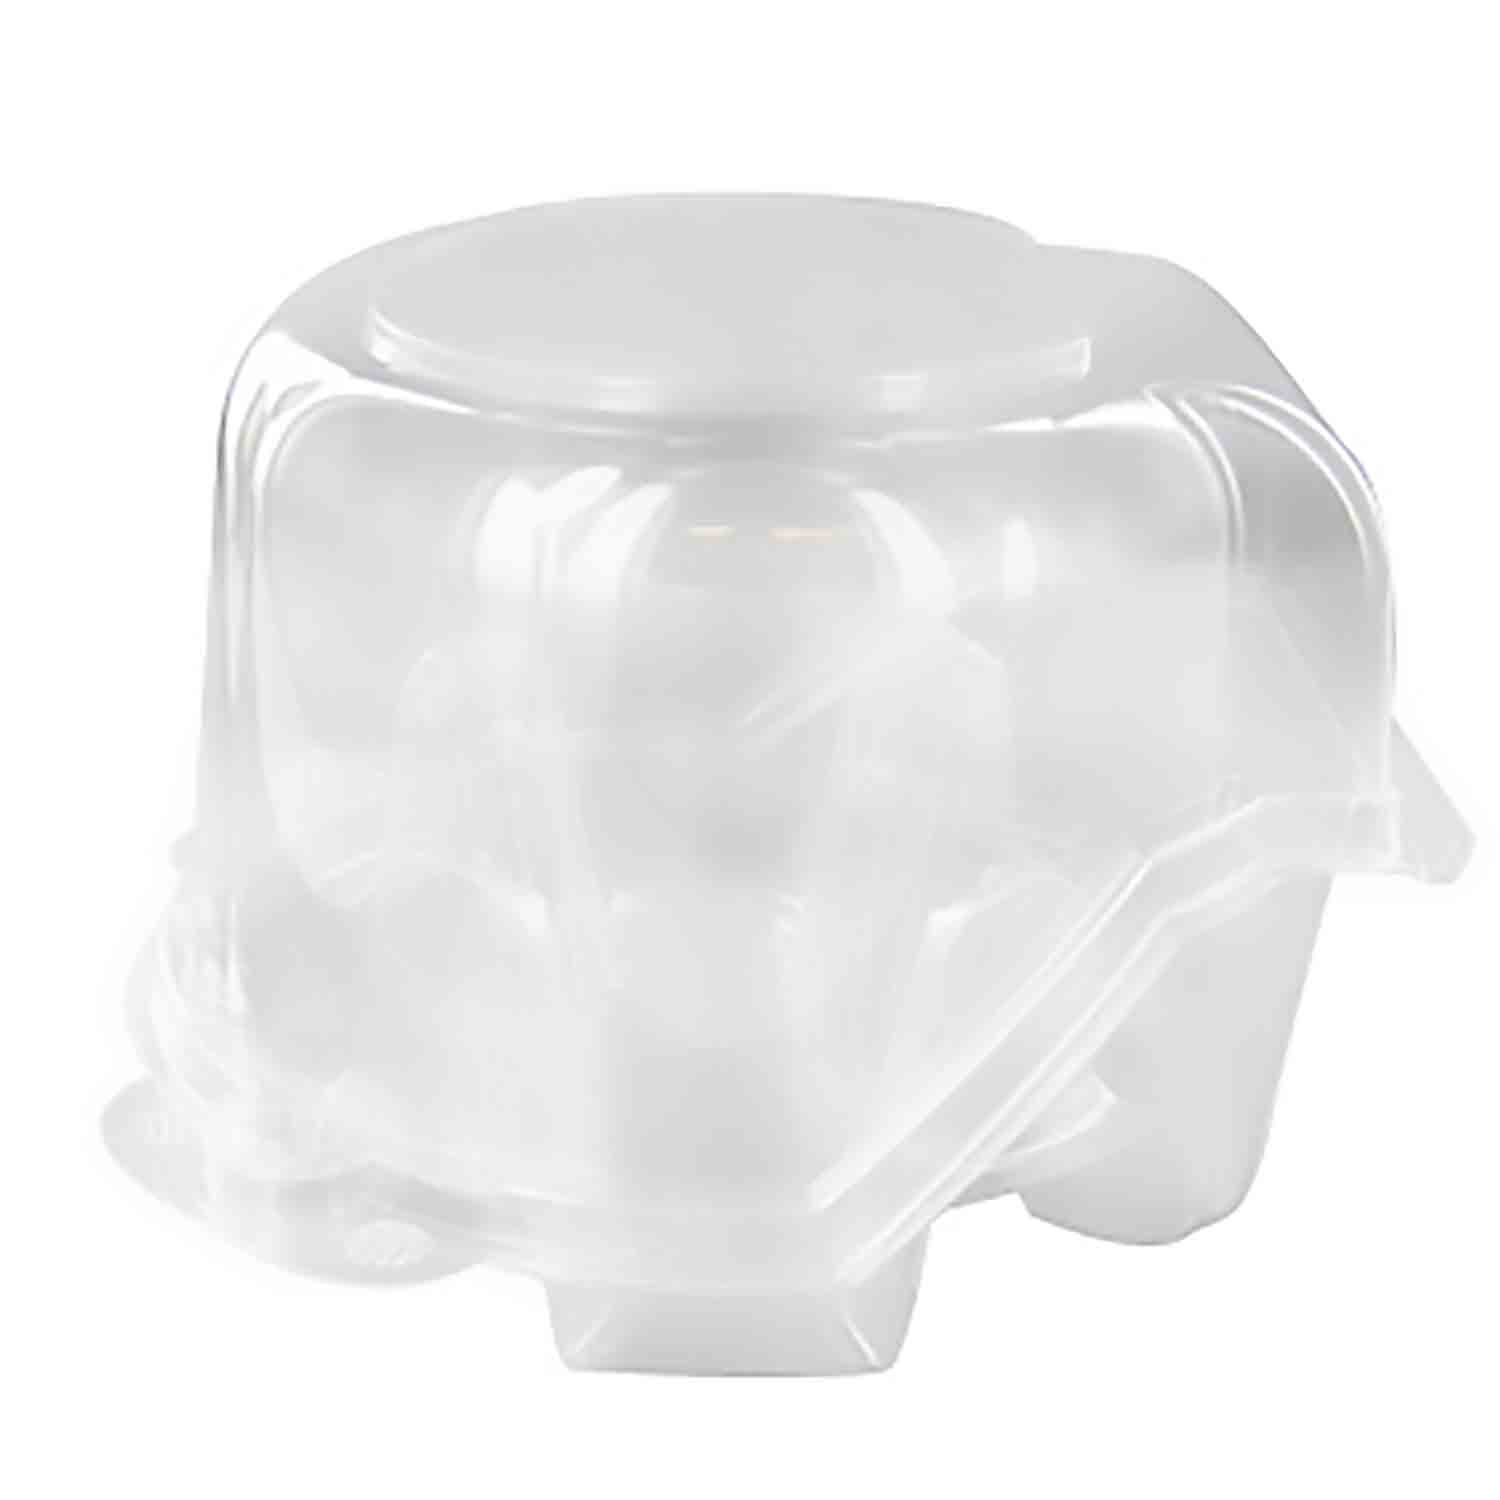 Plastic Shell - Holds 1 Standard Size Cupcake